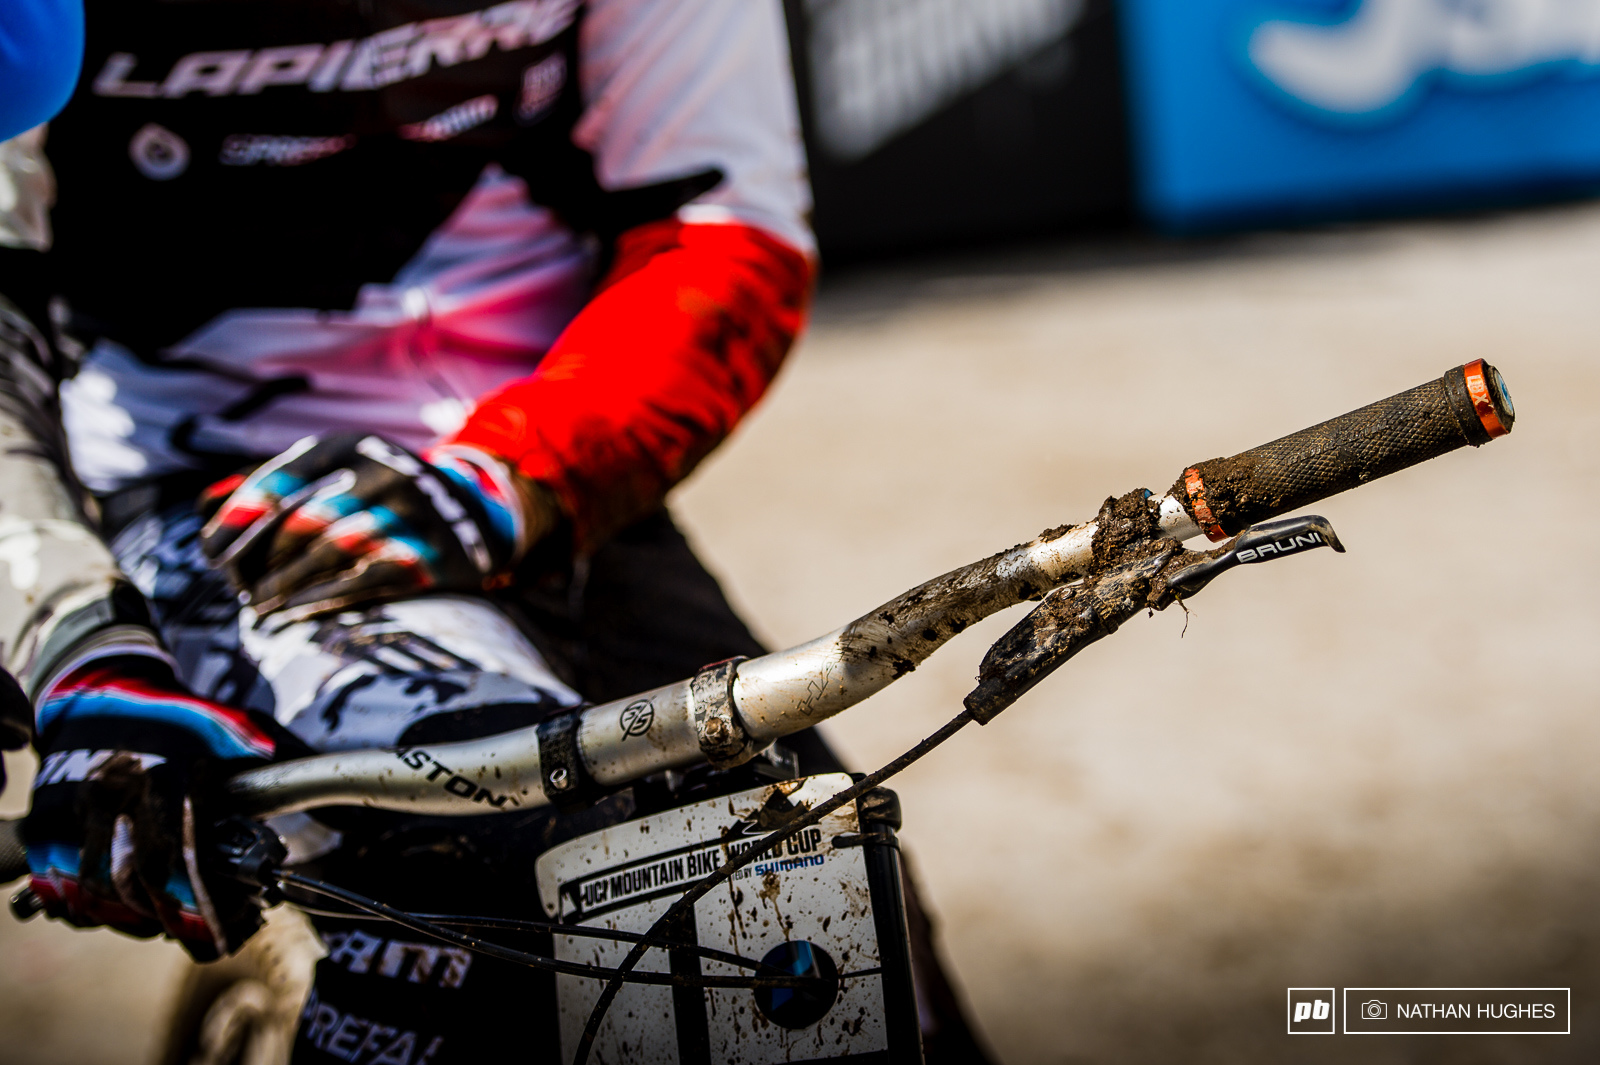 One of these days Loic s going put wrongs to right. Somehow he was still able to come in 7th and only drop to 2nd in the overall despite his spill in the woods. Look out Leogang...